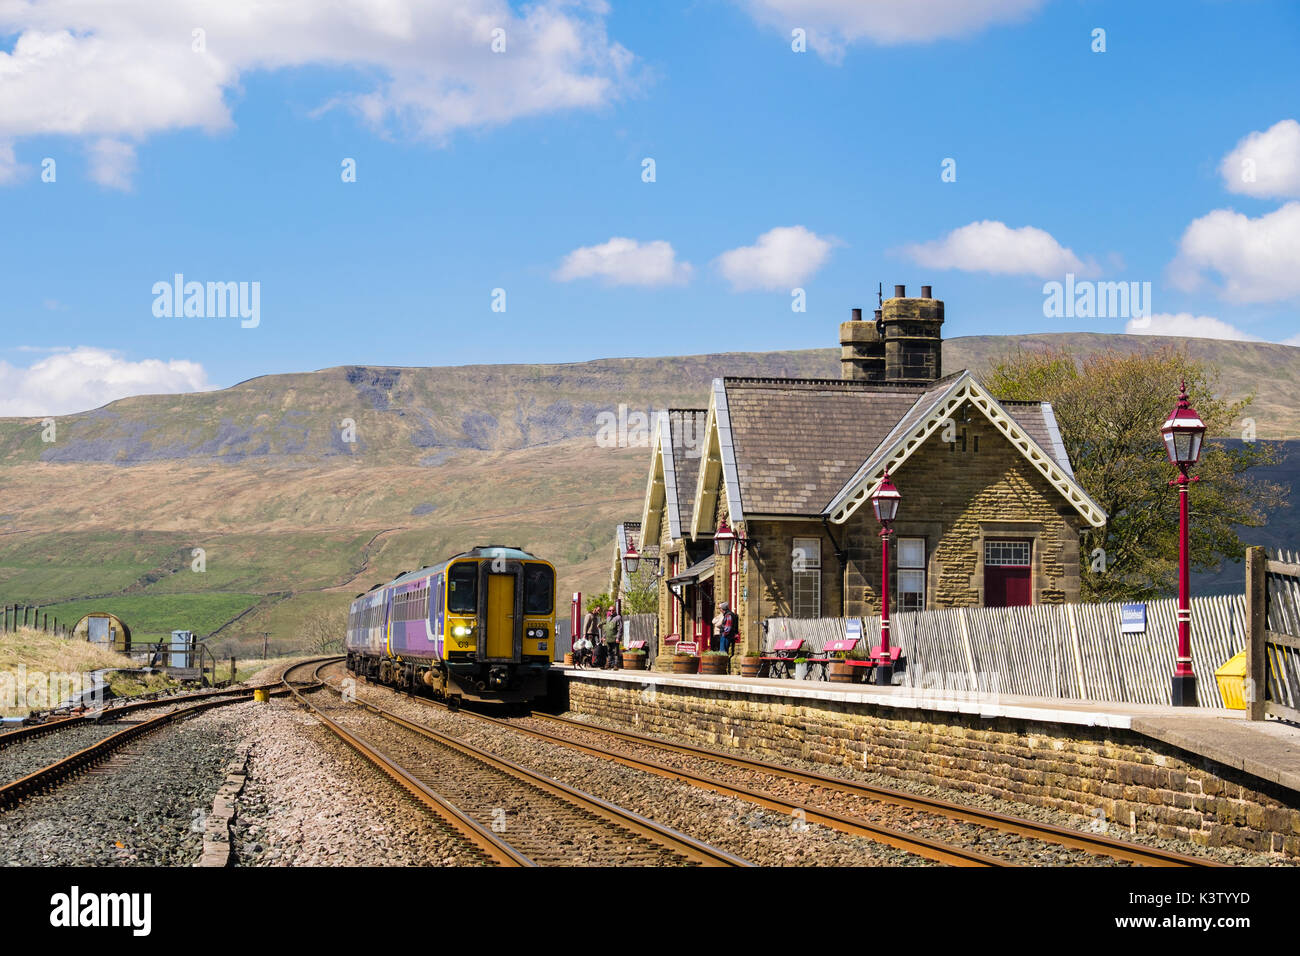 Passengers waiting for train approaching Ribblehead station on Settle to Carlisle railway. Yorkshire Dales National Park North Yorkshire England UK - Stock Image